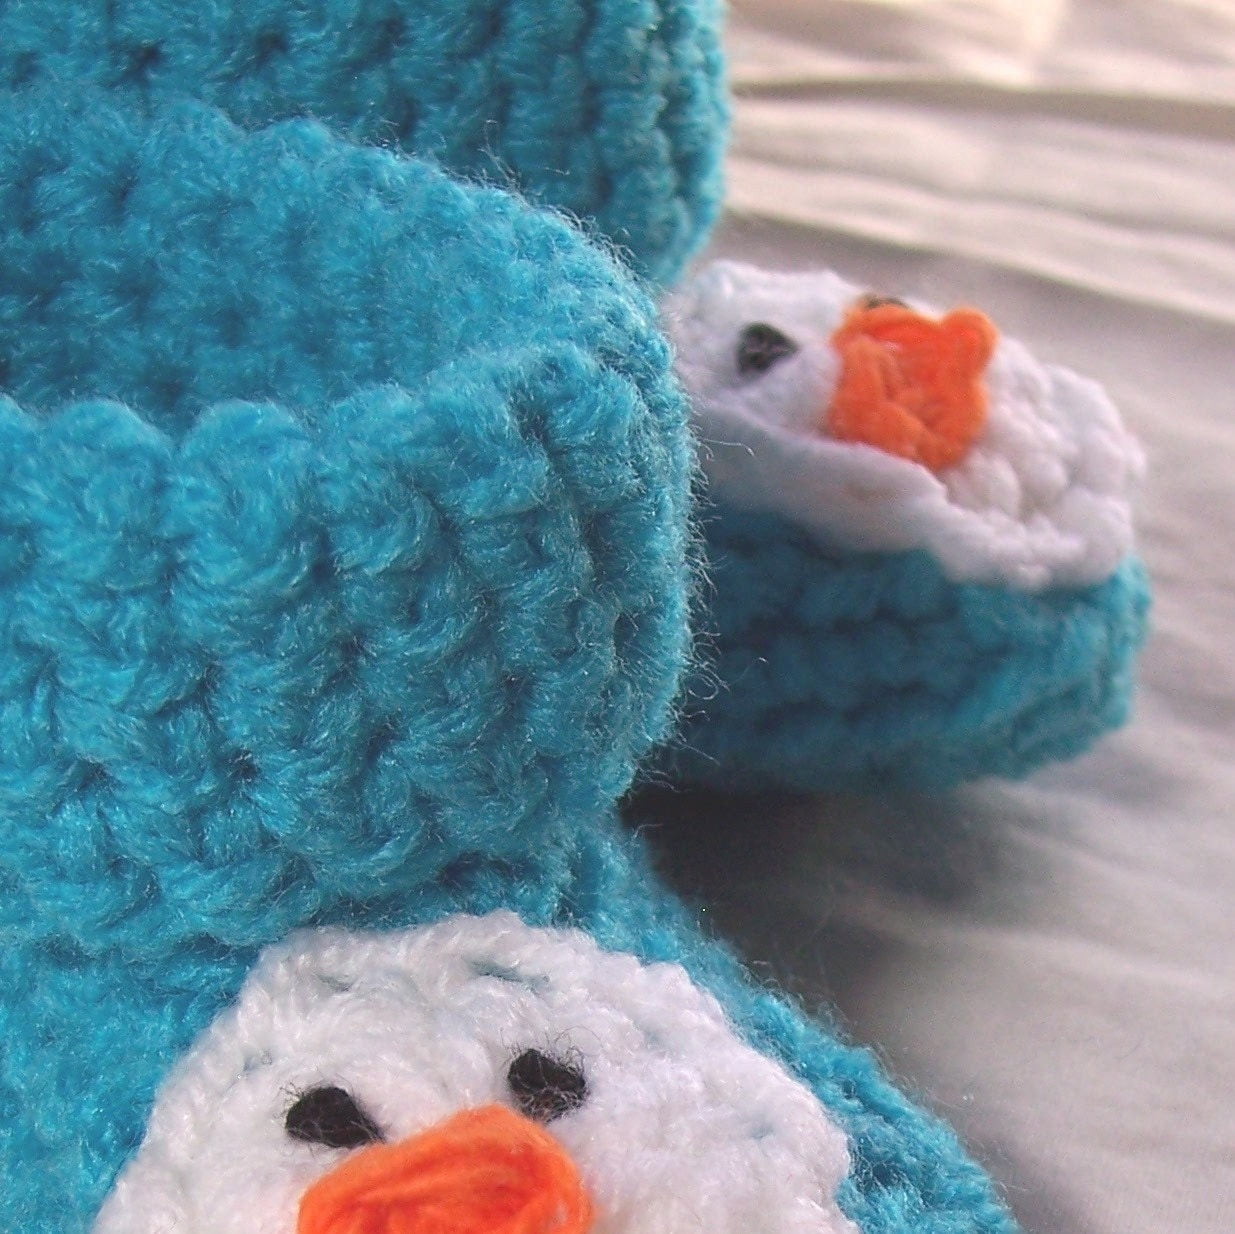 Turquoise Little Snowman Crocheted Cuff Boots - Size 3 - 6 months